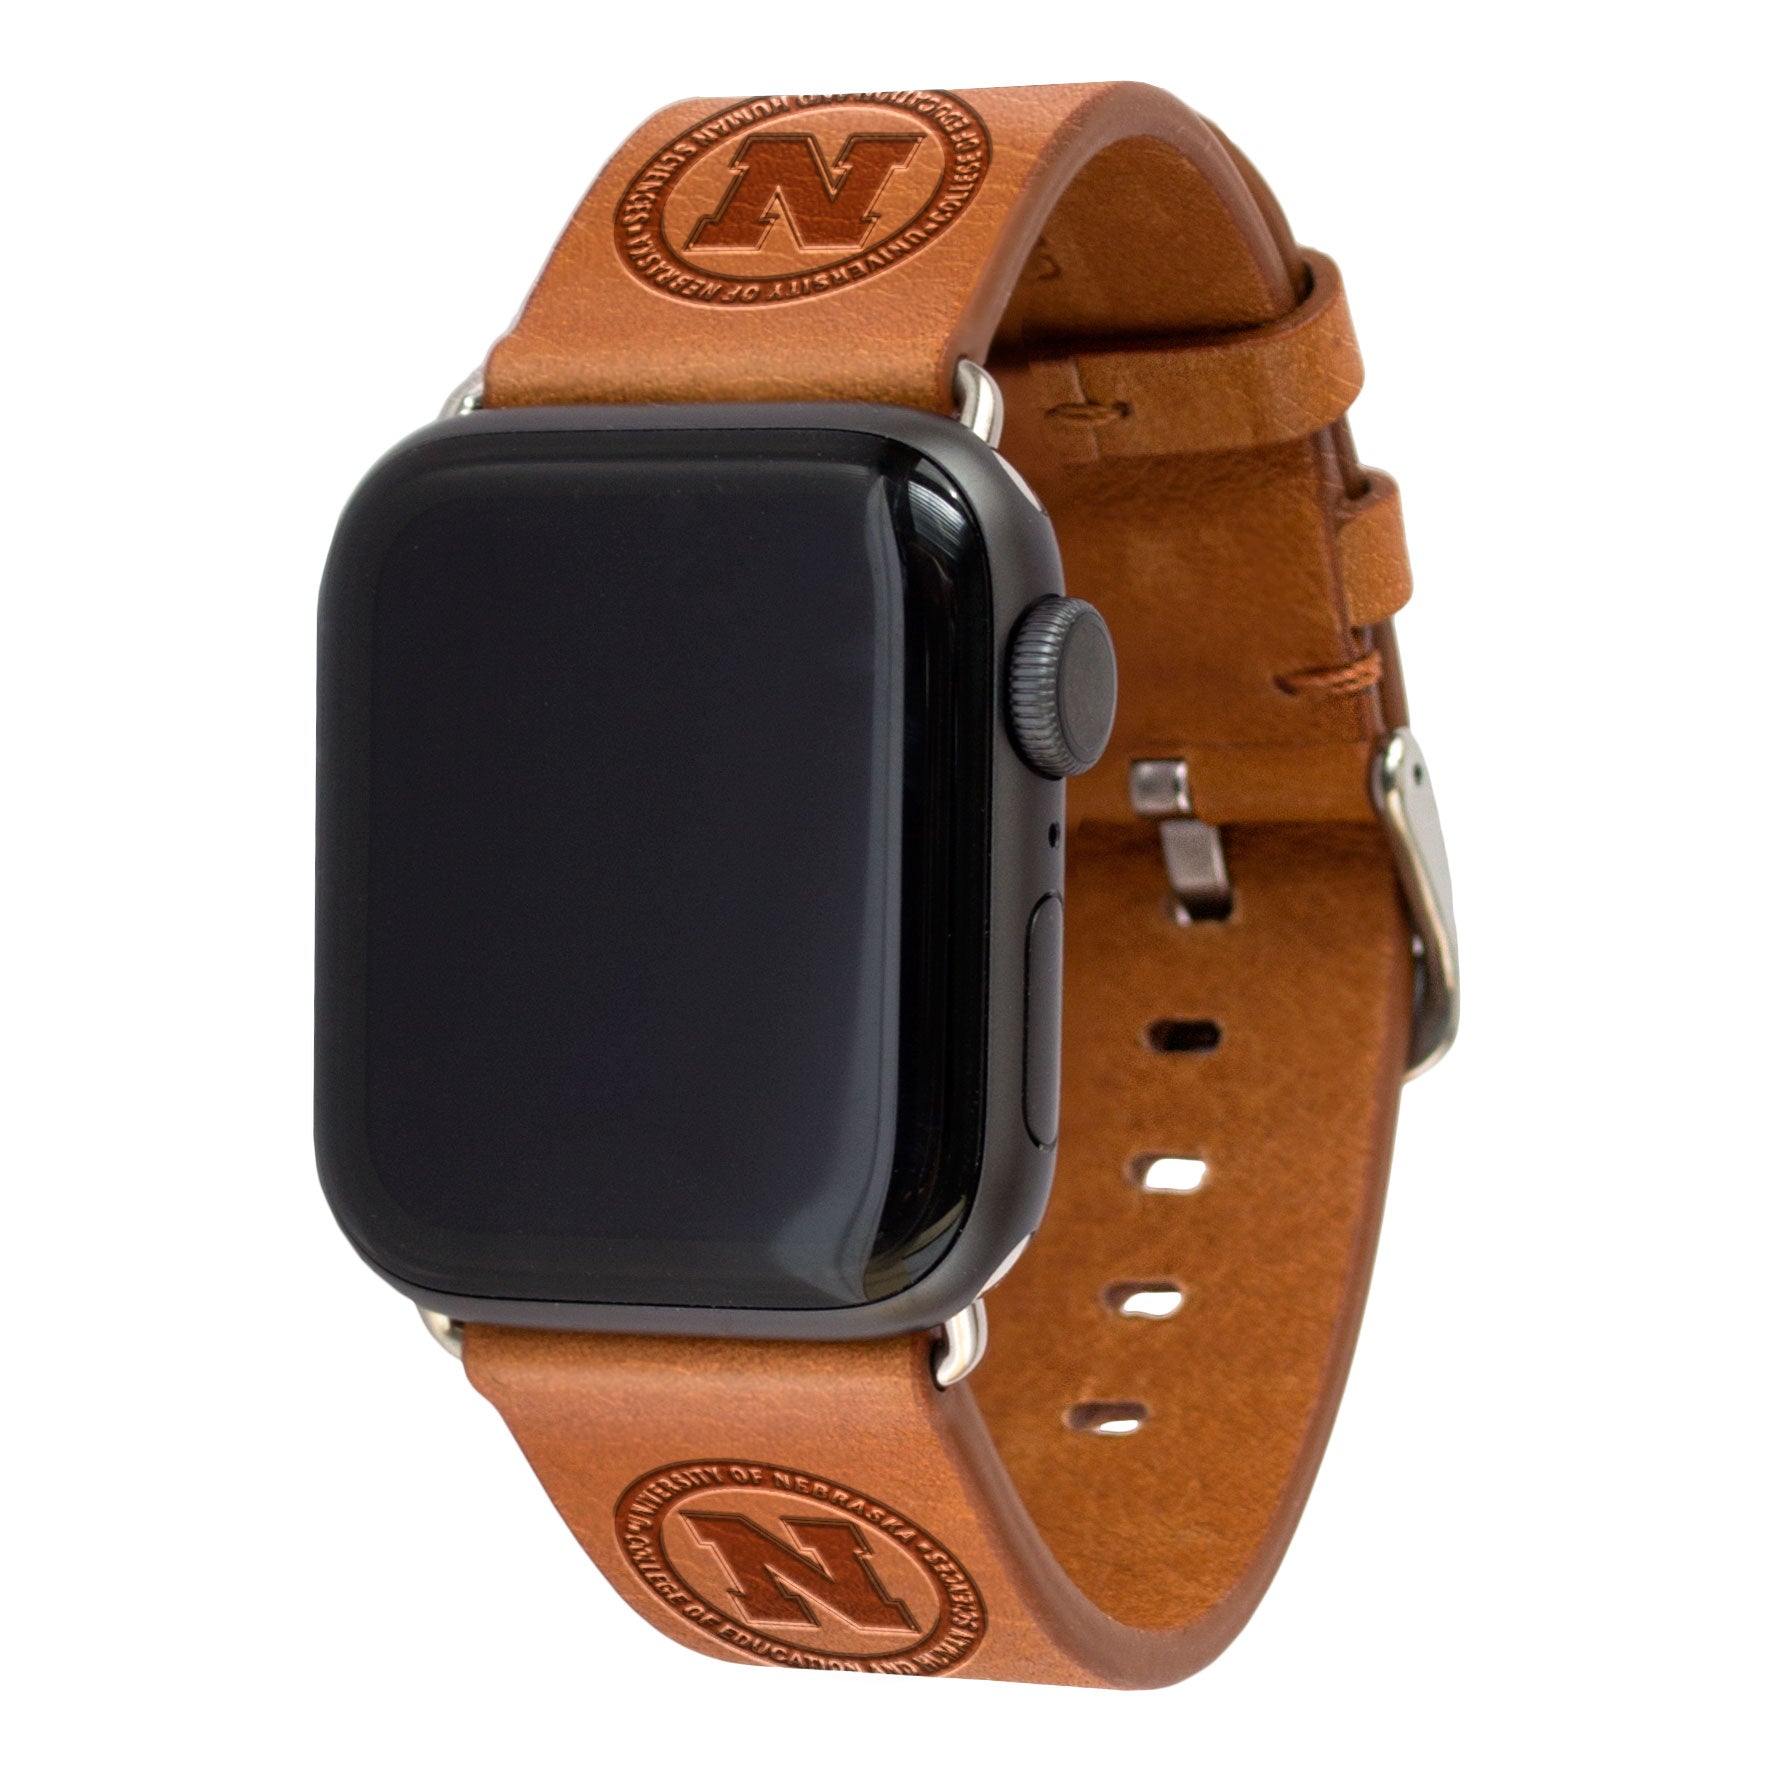 University of Nebraska College of Education and Human Sciences Leather Apple Watch Band